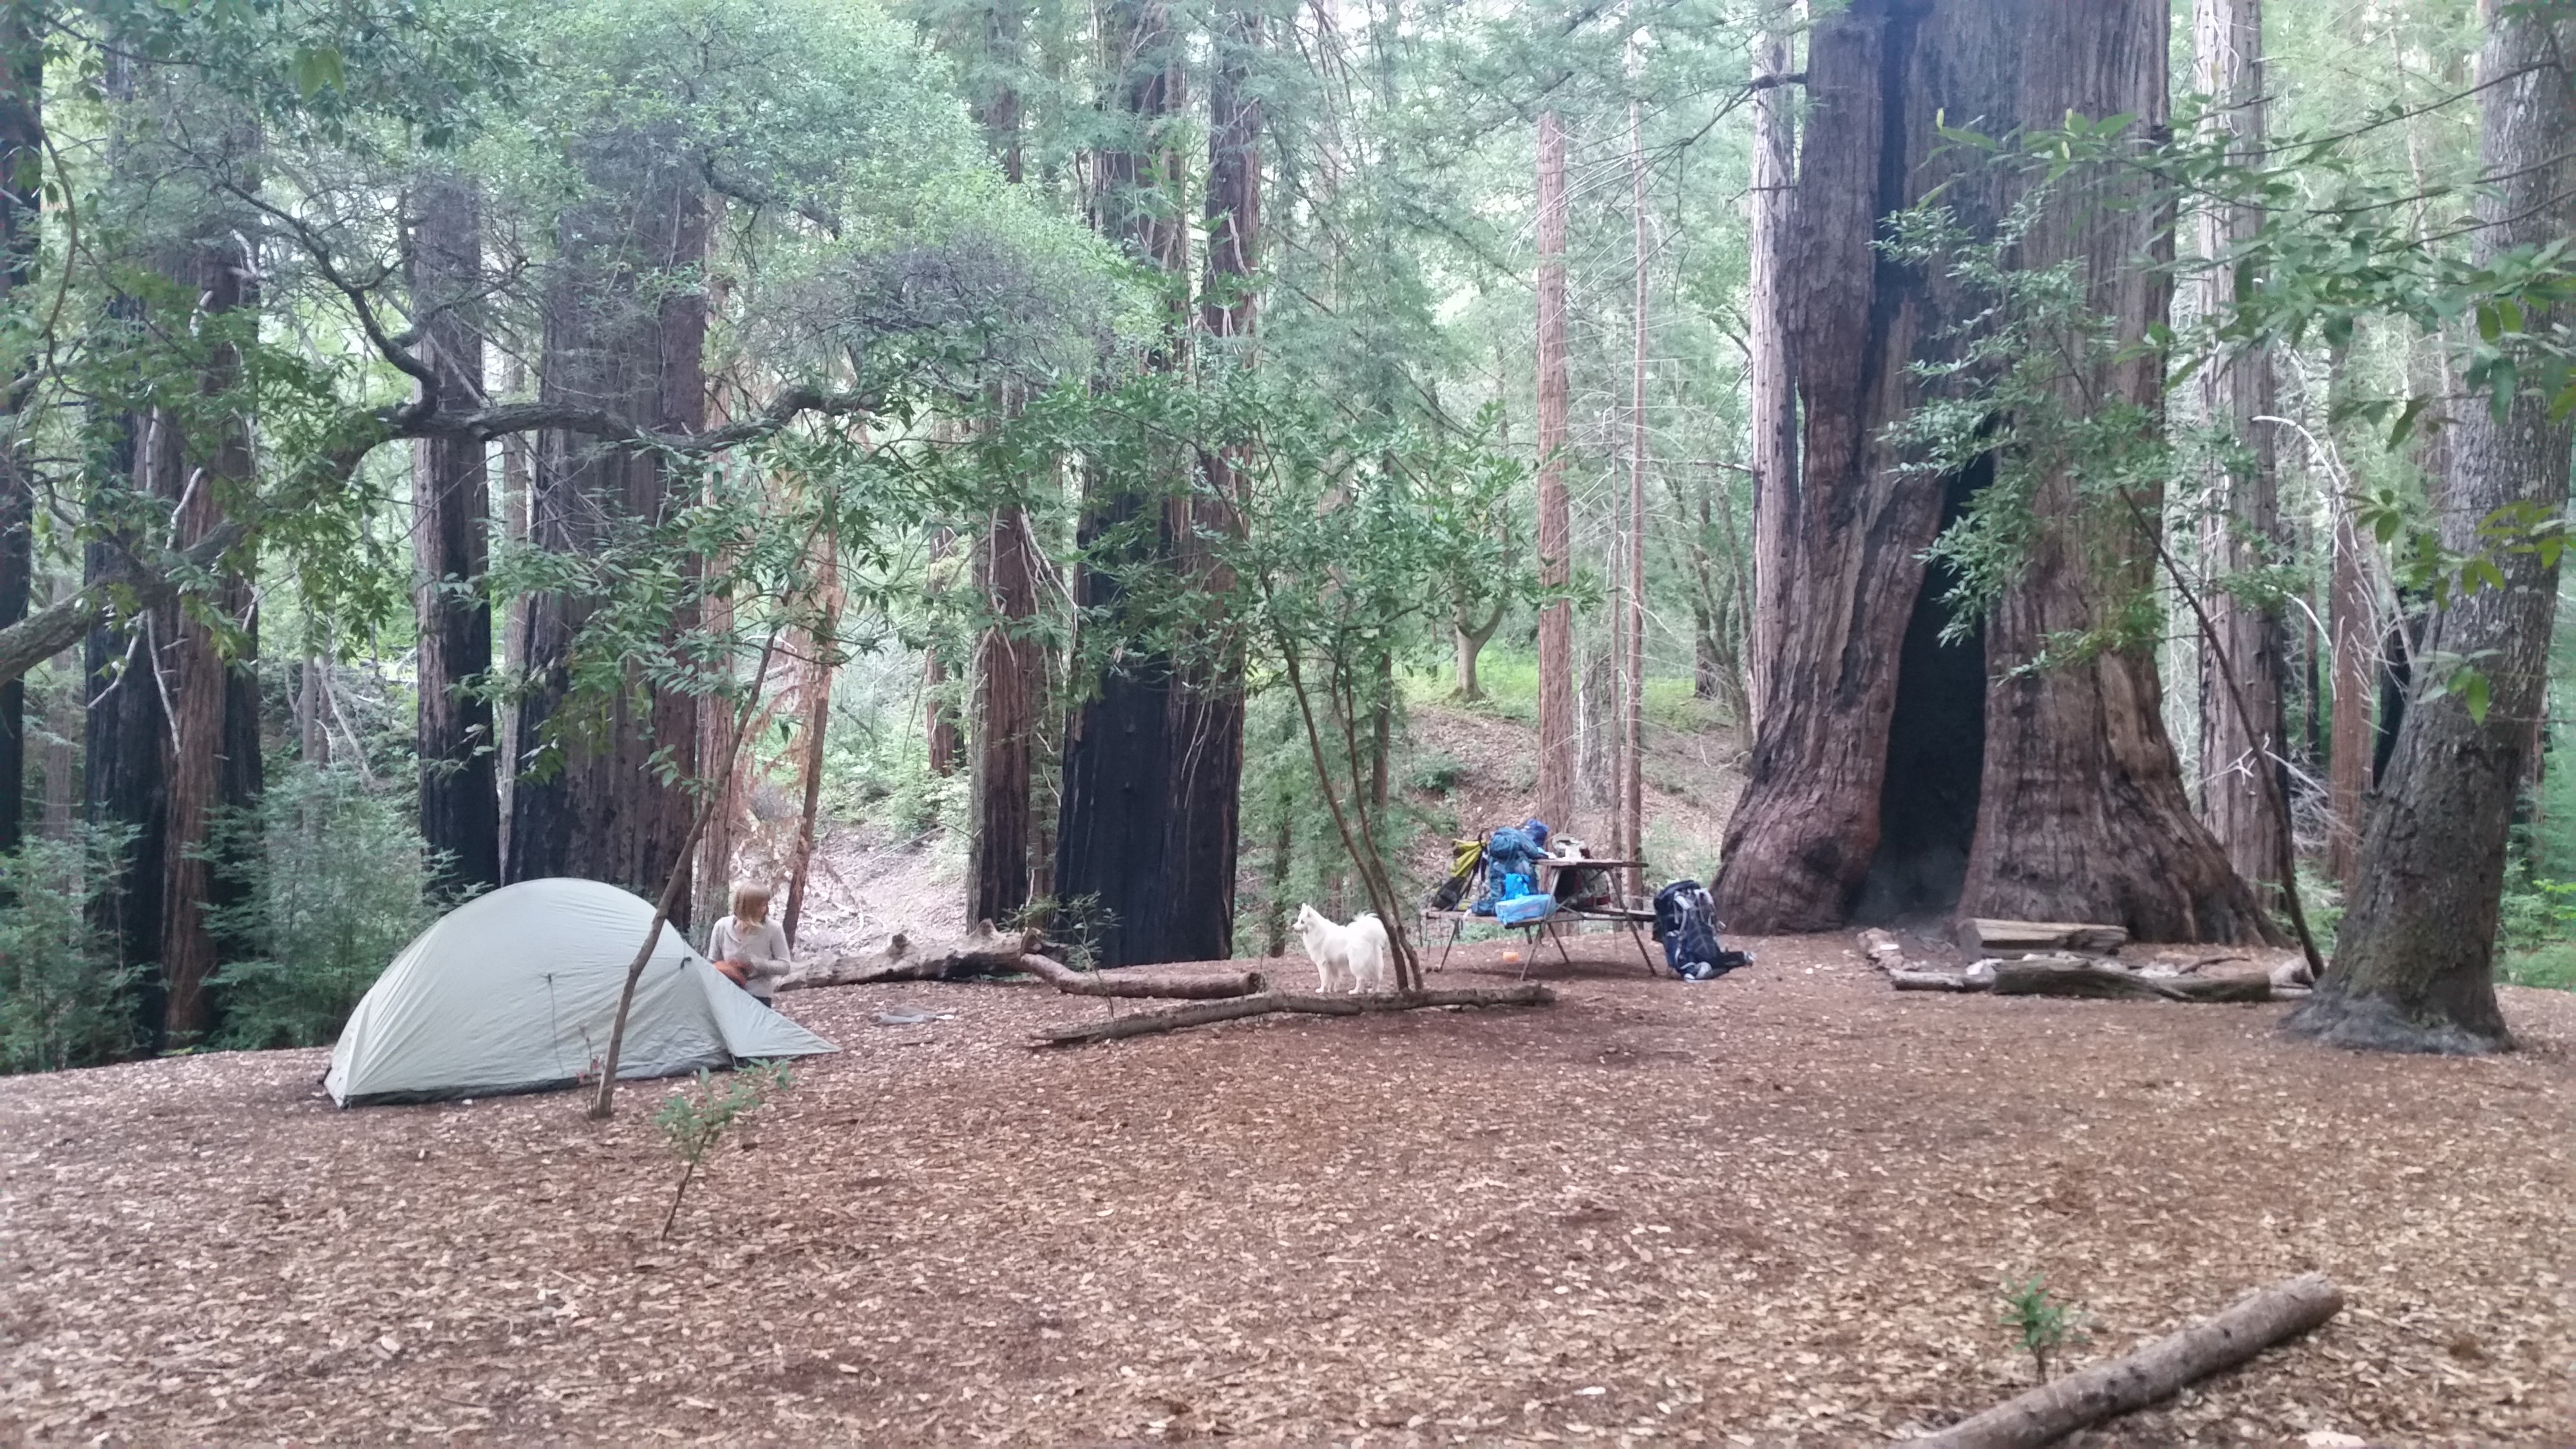 Vicente Flats — Big Sur Backpacking - Amy K - Medium